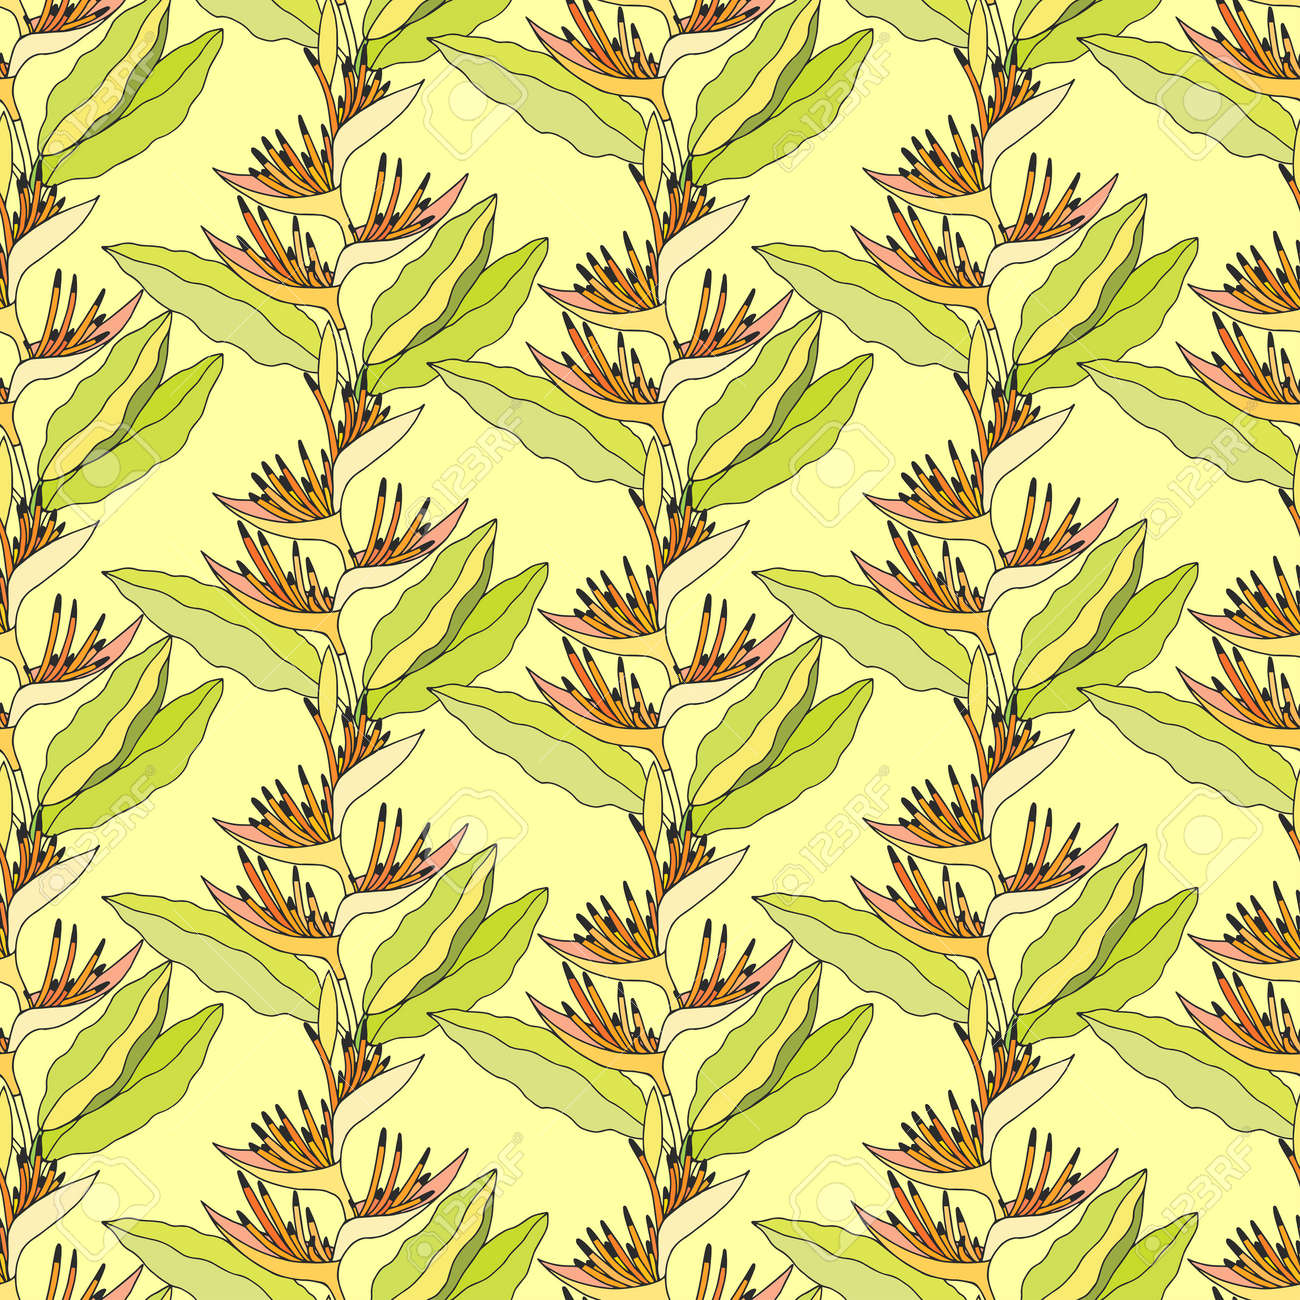 Seamless pattern of Heliconium plant. EPS10 vector illustration. Hand drawing. - 169120889